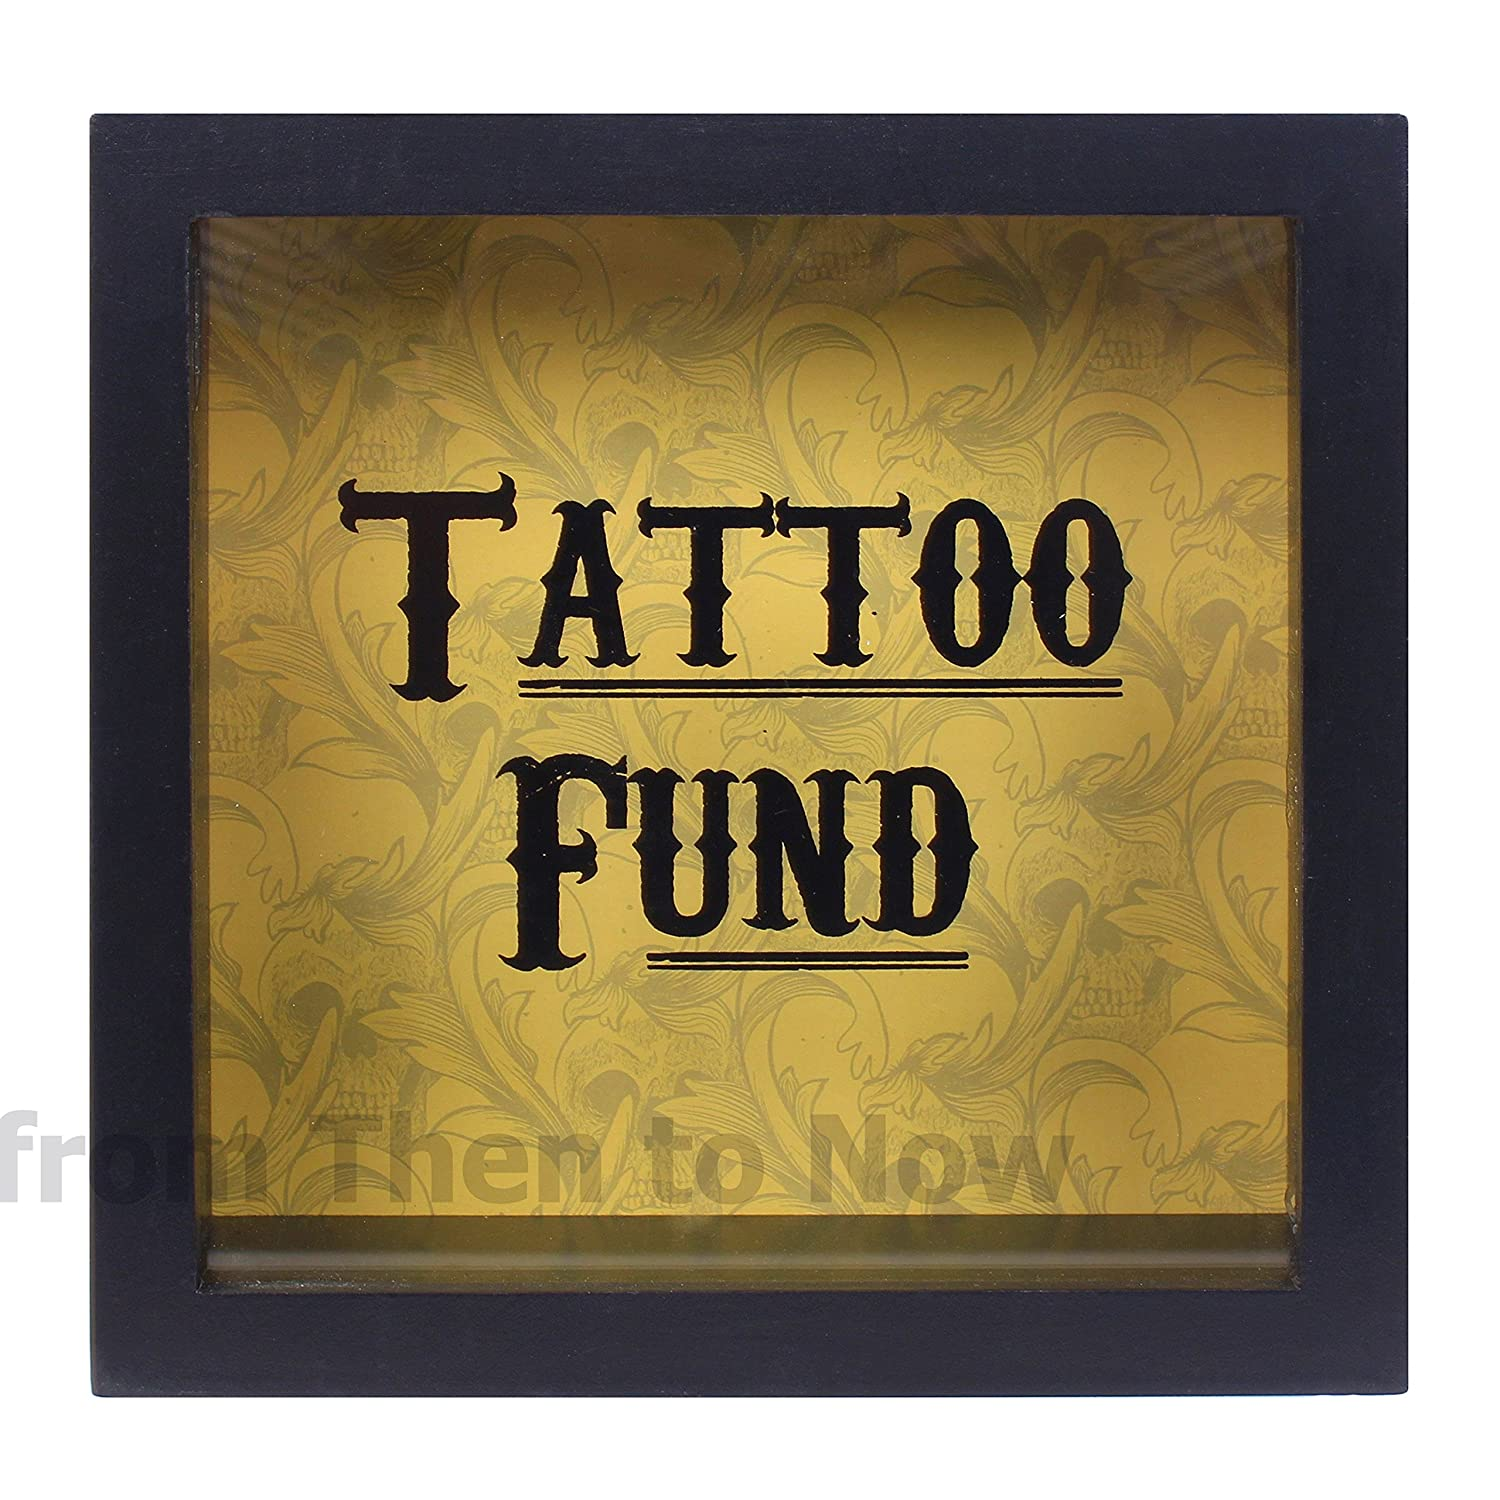 Black Tattoo Fund Glass Money Box with Wooden Frame Something Different